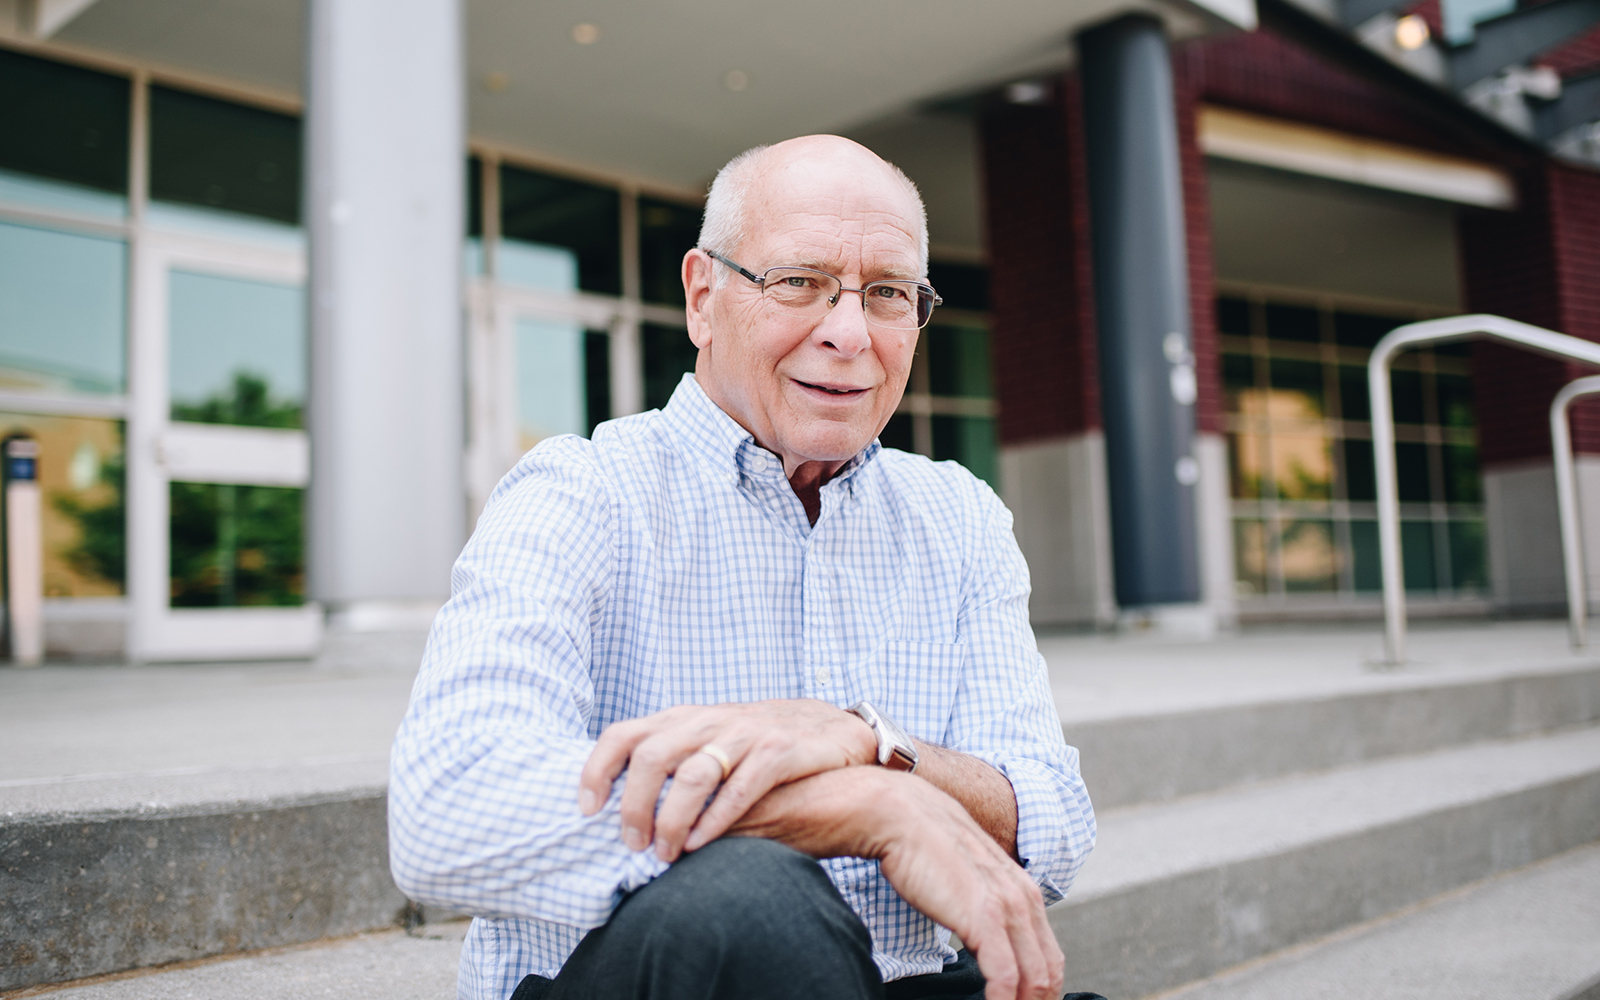 Professor John Clapp, pictured above, plans to continue his research into solutions for vacant Retail spaces (Nathan Oldham / UConn School of Business)